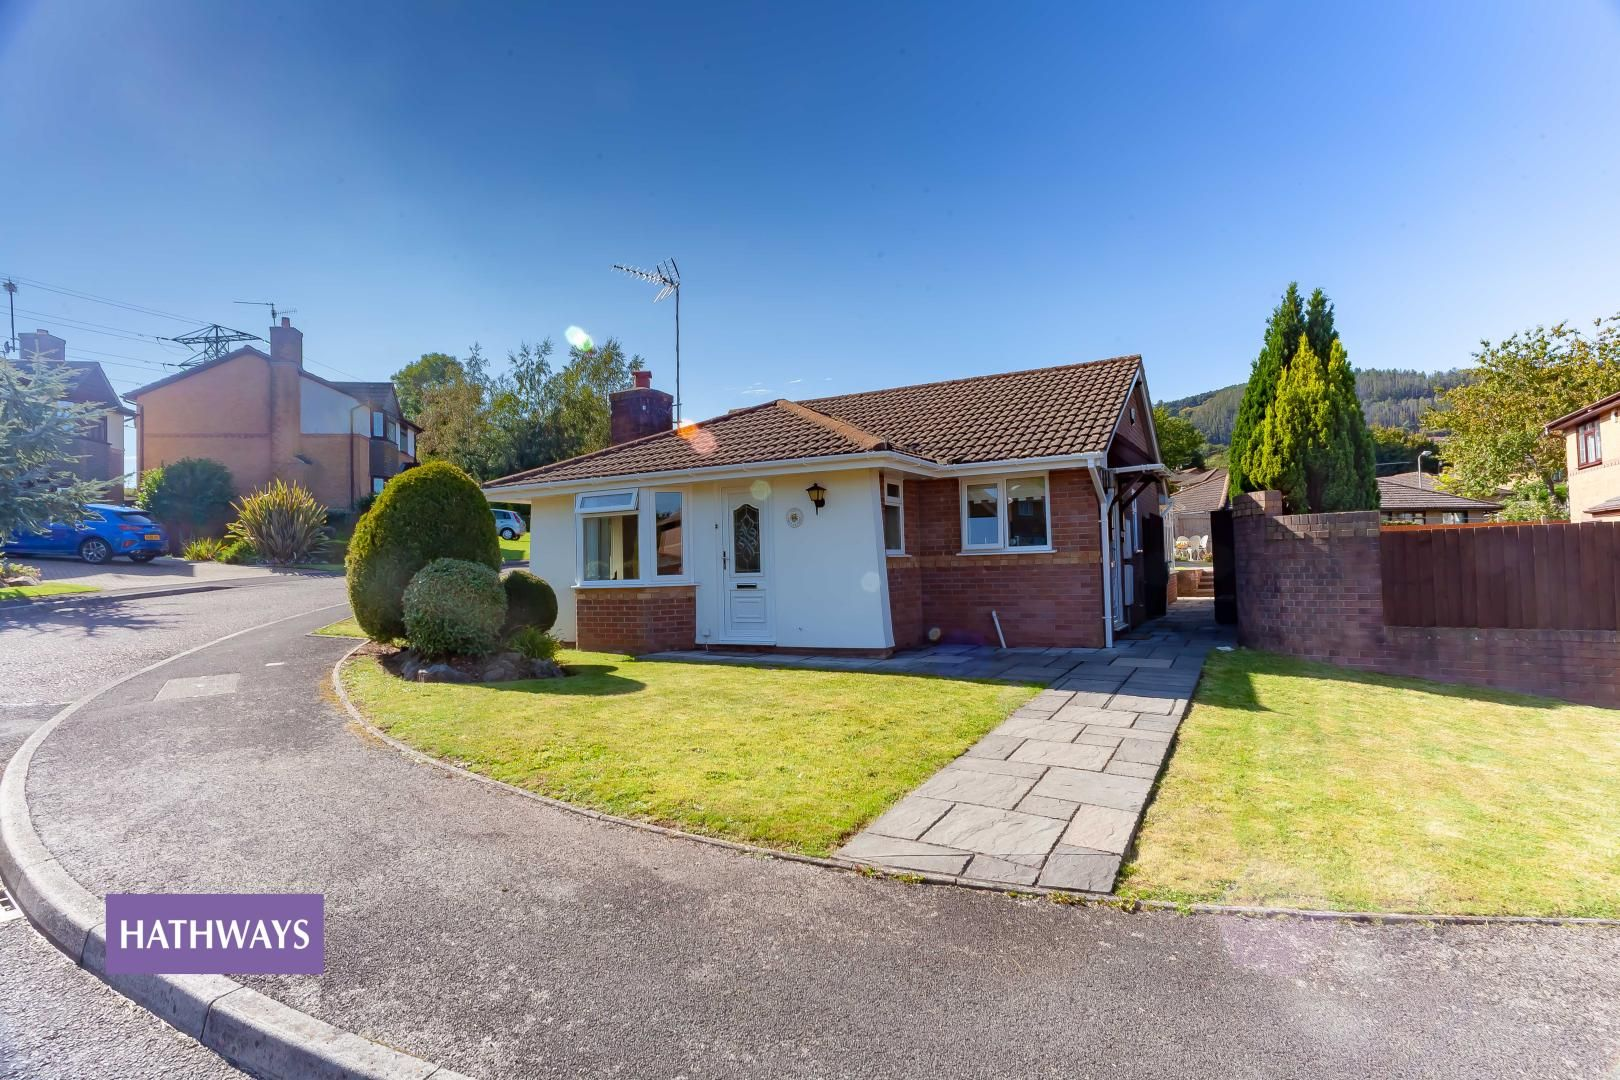 2 bed bungalow for sale in Pant Yr Heol Close, NP44